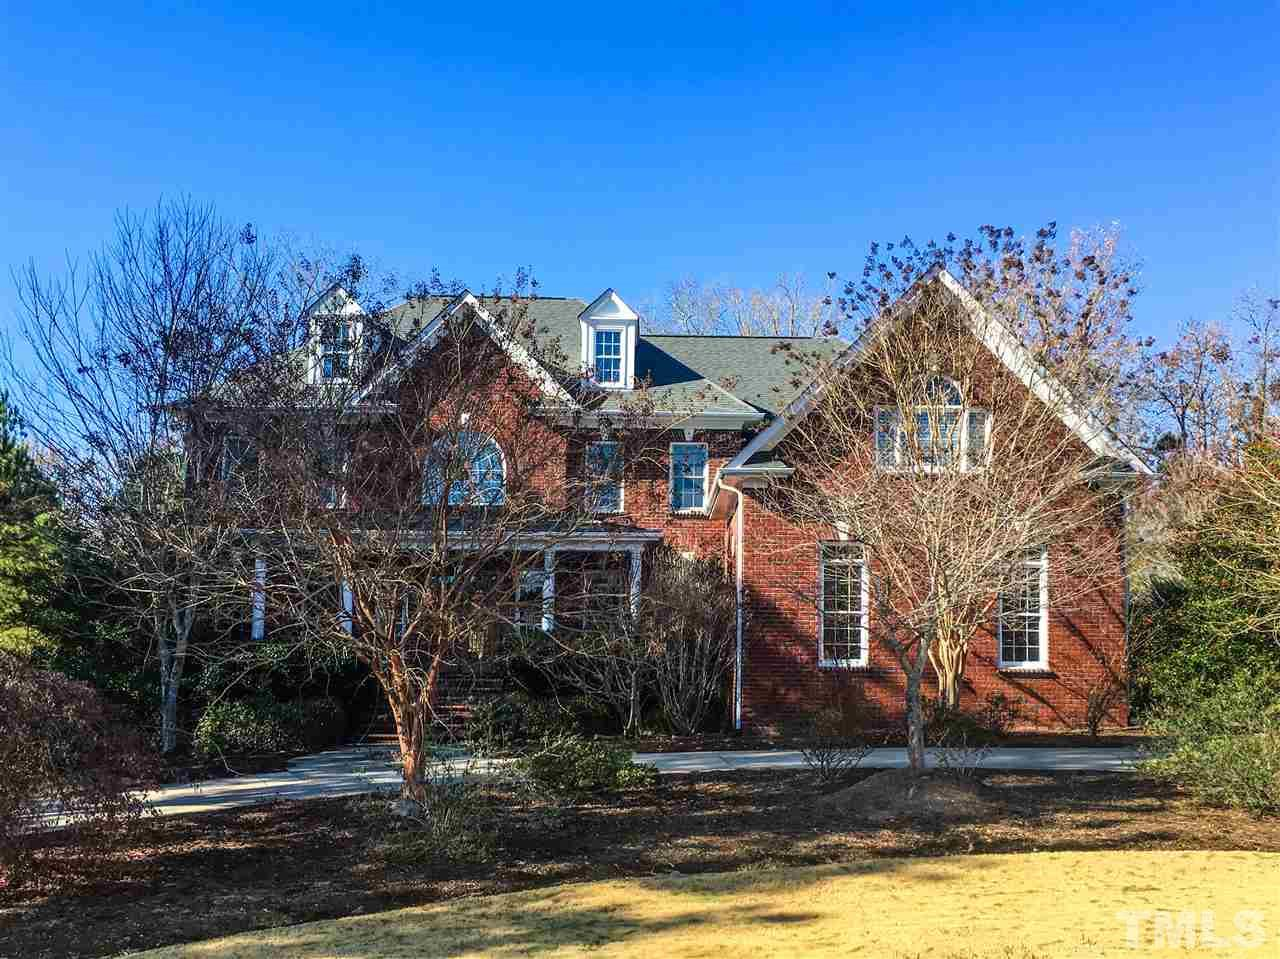 Come see Sat. 4/6, 1-4! Custom 5023+2302 sq.ft home with circle drive leading to double staircase & 2 balconies overlooking. Vast master suite, 5 beds all ensuite & loft up. Kitchen has endless granite counters & cabinets & large island overlooking wooded yard. High ceilings & crown molding throughout. 1st floor in-ceiling audio. Walkout  basement w/ plumbing, electric & fireplace-ready to finish. Home Warranty! Chatham Low Taxes! Community pool, tennis, trails. Seller to pay $10,000 buyer closing costs!